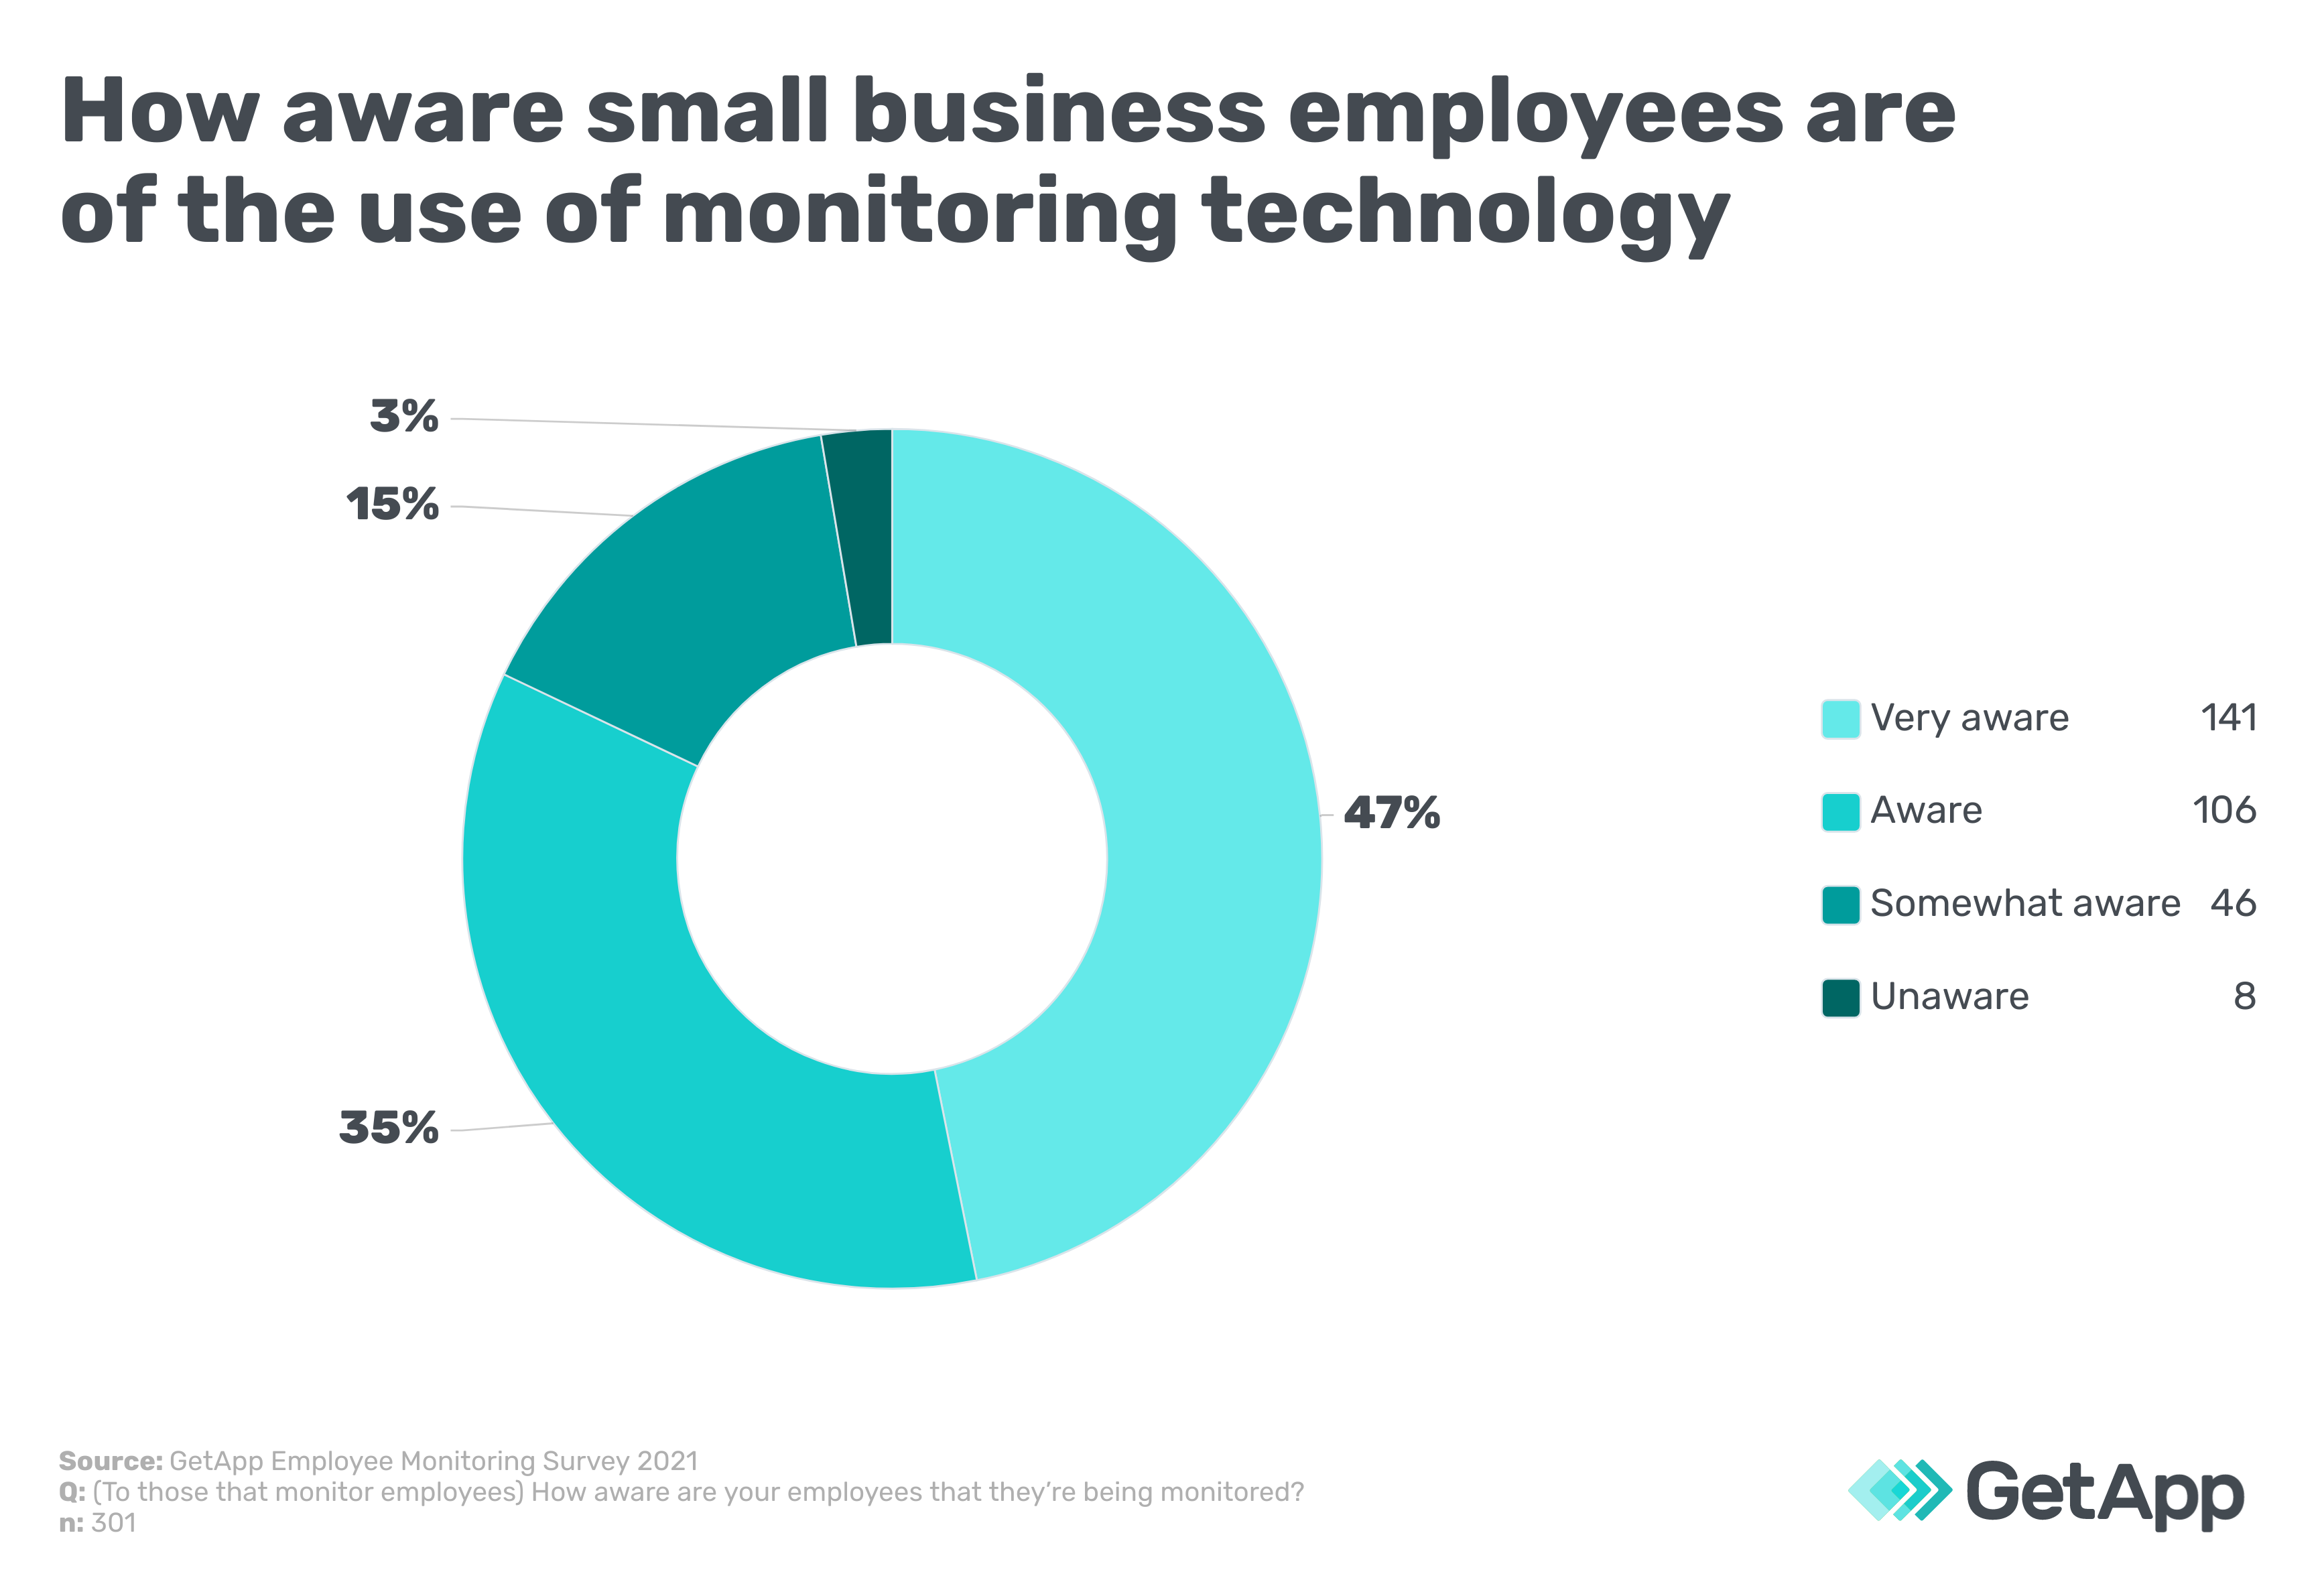 How aware small business employees are of the use of monitoring technology